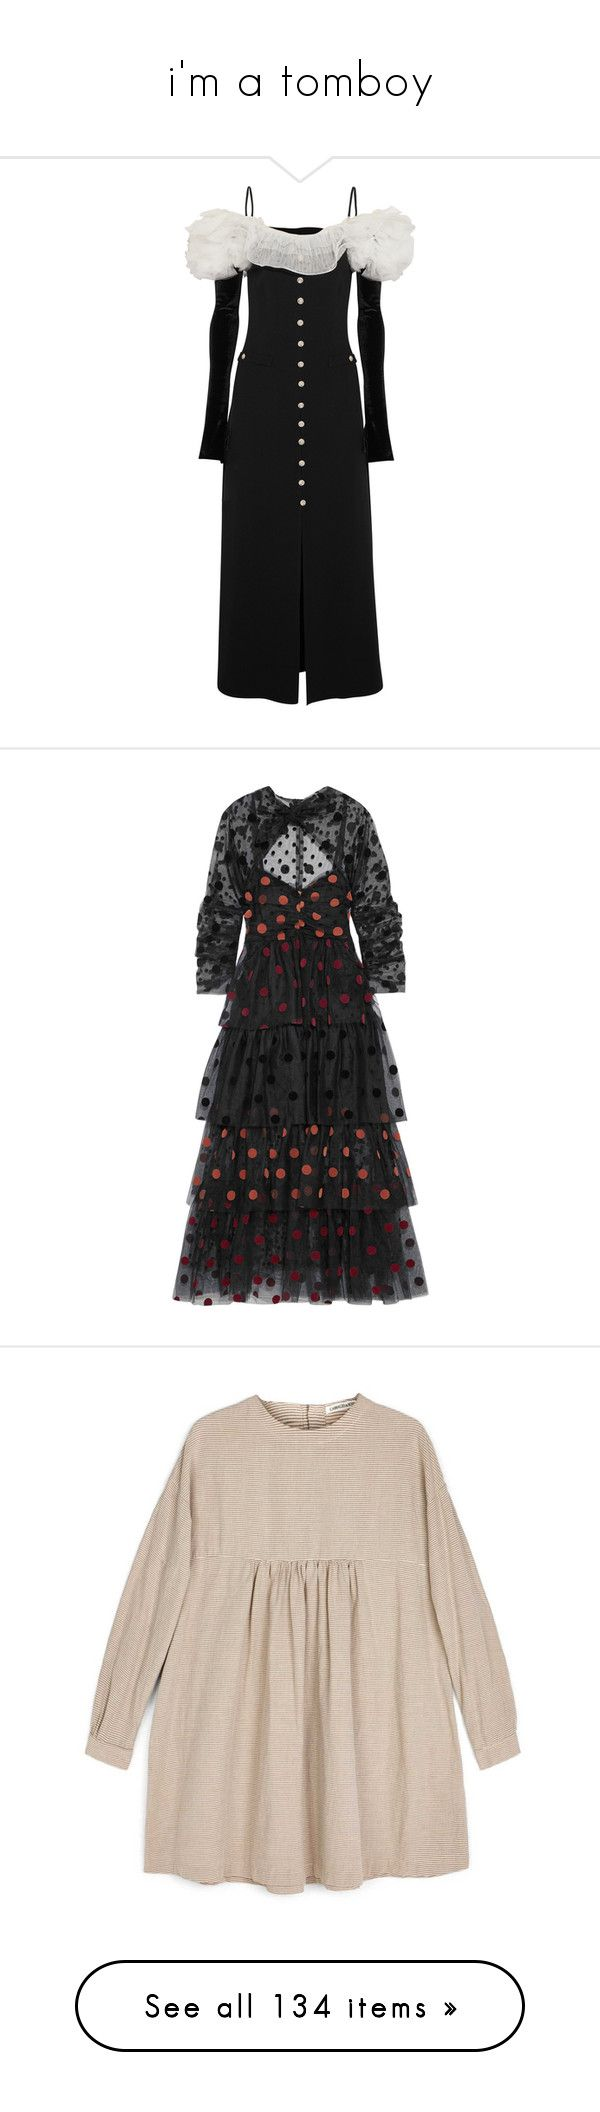 """""""i'm a tomboy"""" by eotirka ❤ liked on Polyvore featuring dresses, gowns, off shoulder gowns, white ball gowns, white off the shoulder dress, white evening dresses, off-the-shoulder dresses, tulle cocktail dress, polka dot cocktail dress and calf length dresses"""